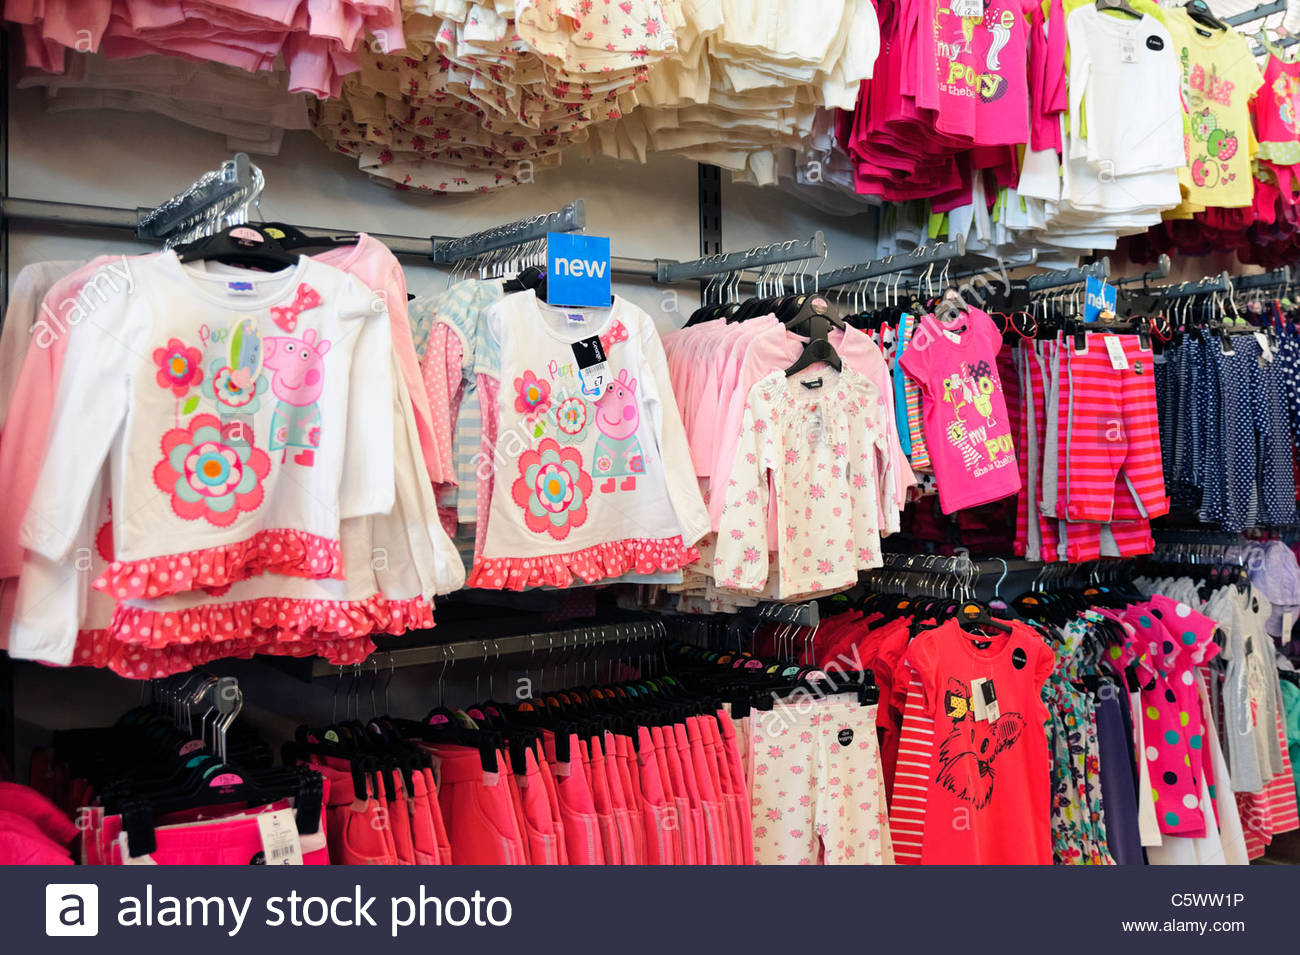 childrens clothes george range for sale in an asda supermarket england C5WW1P childrens clothes stock photos & childrens clothes stock images,Childrens Clothes Retailers Uk